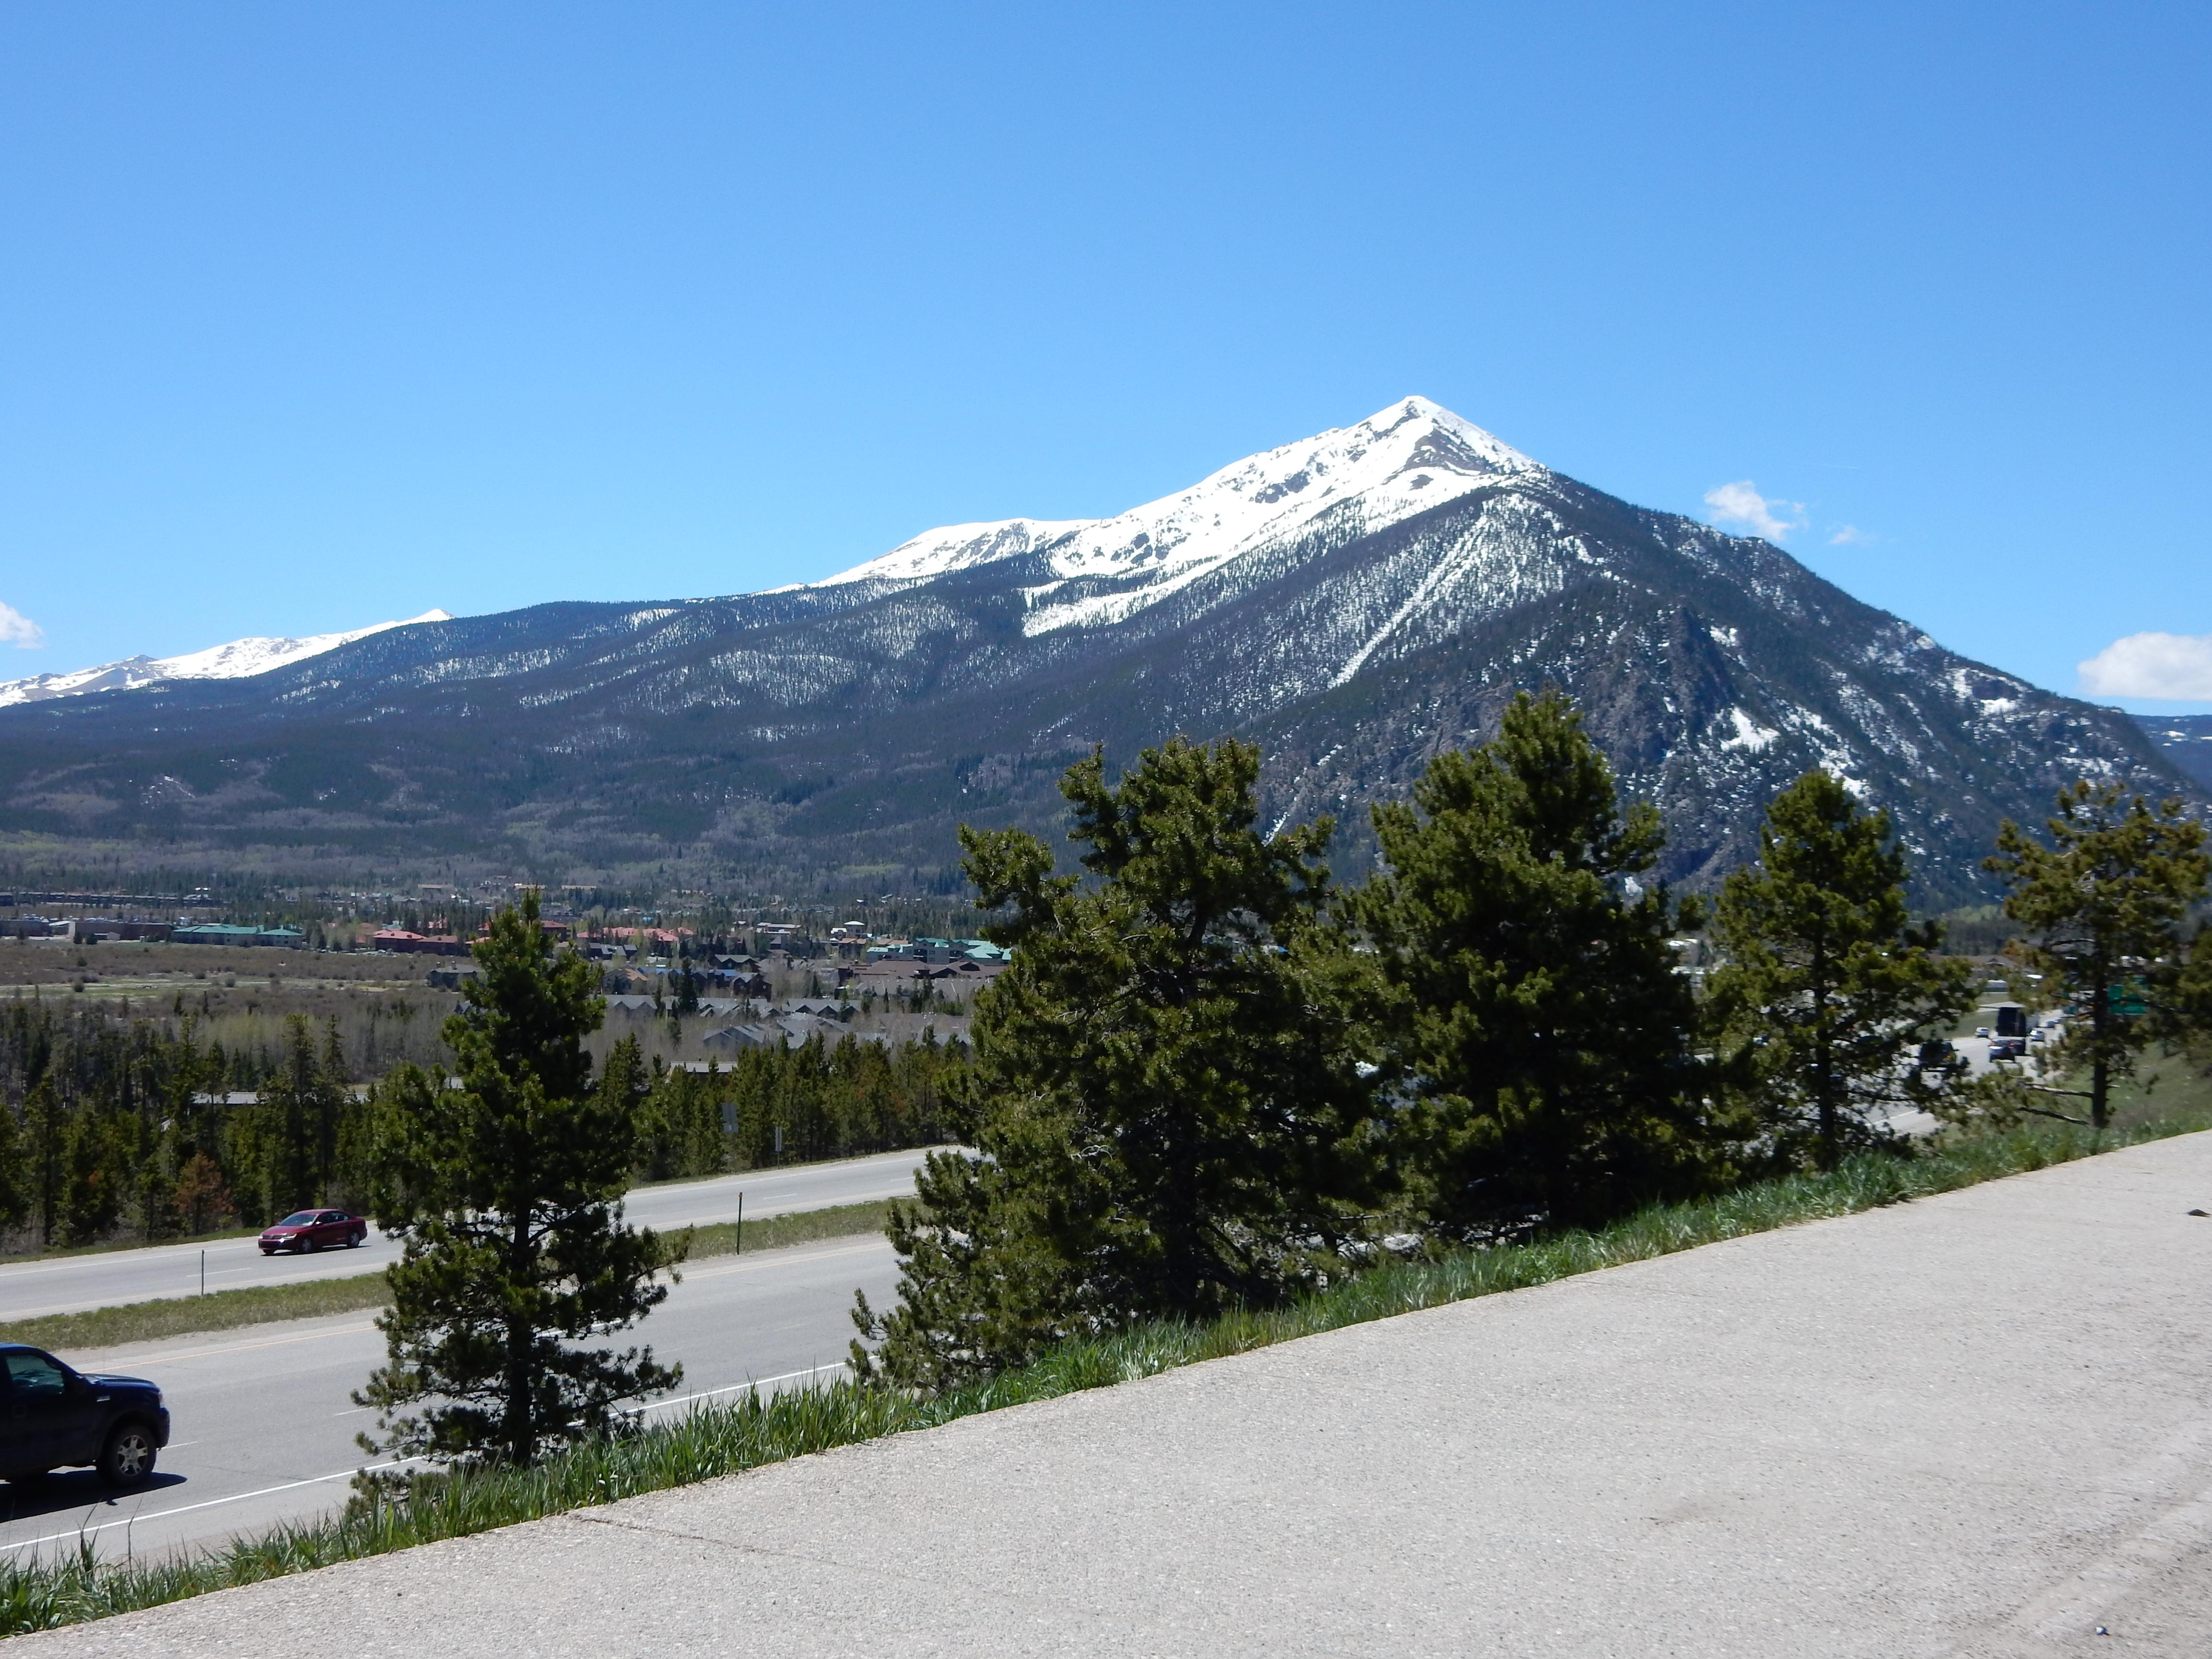 A mountain west of Frisco, CO.